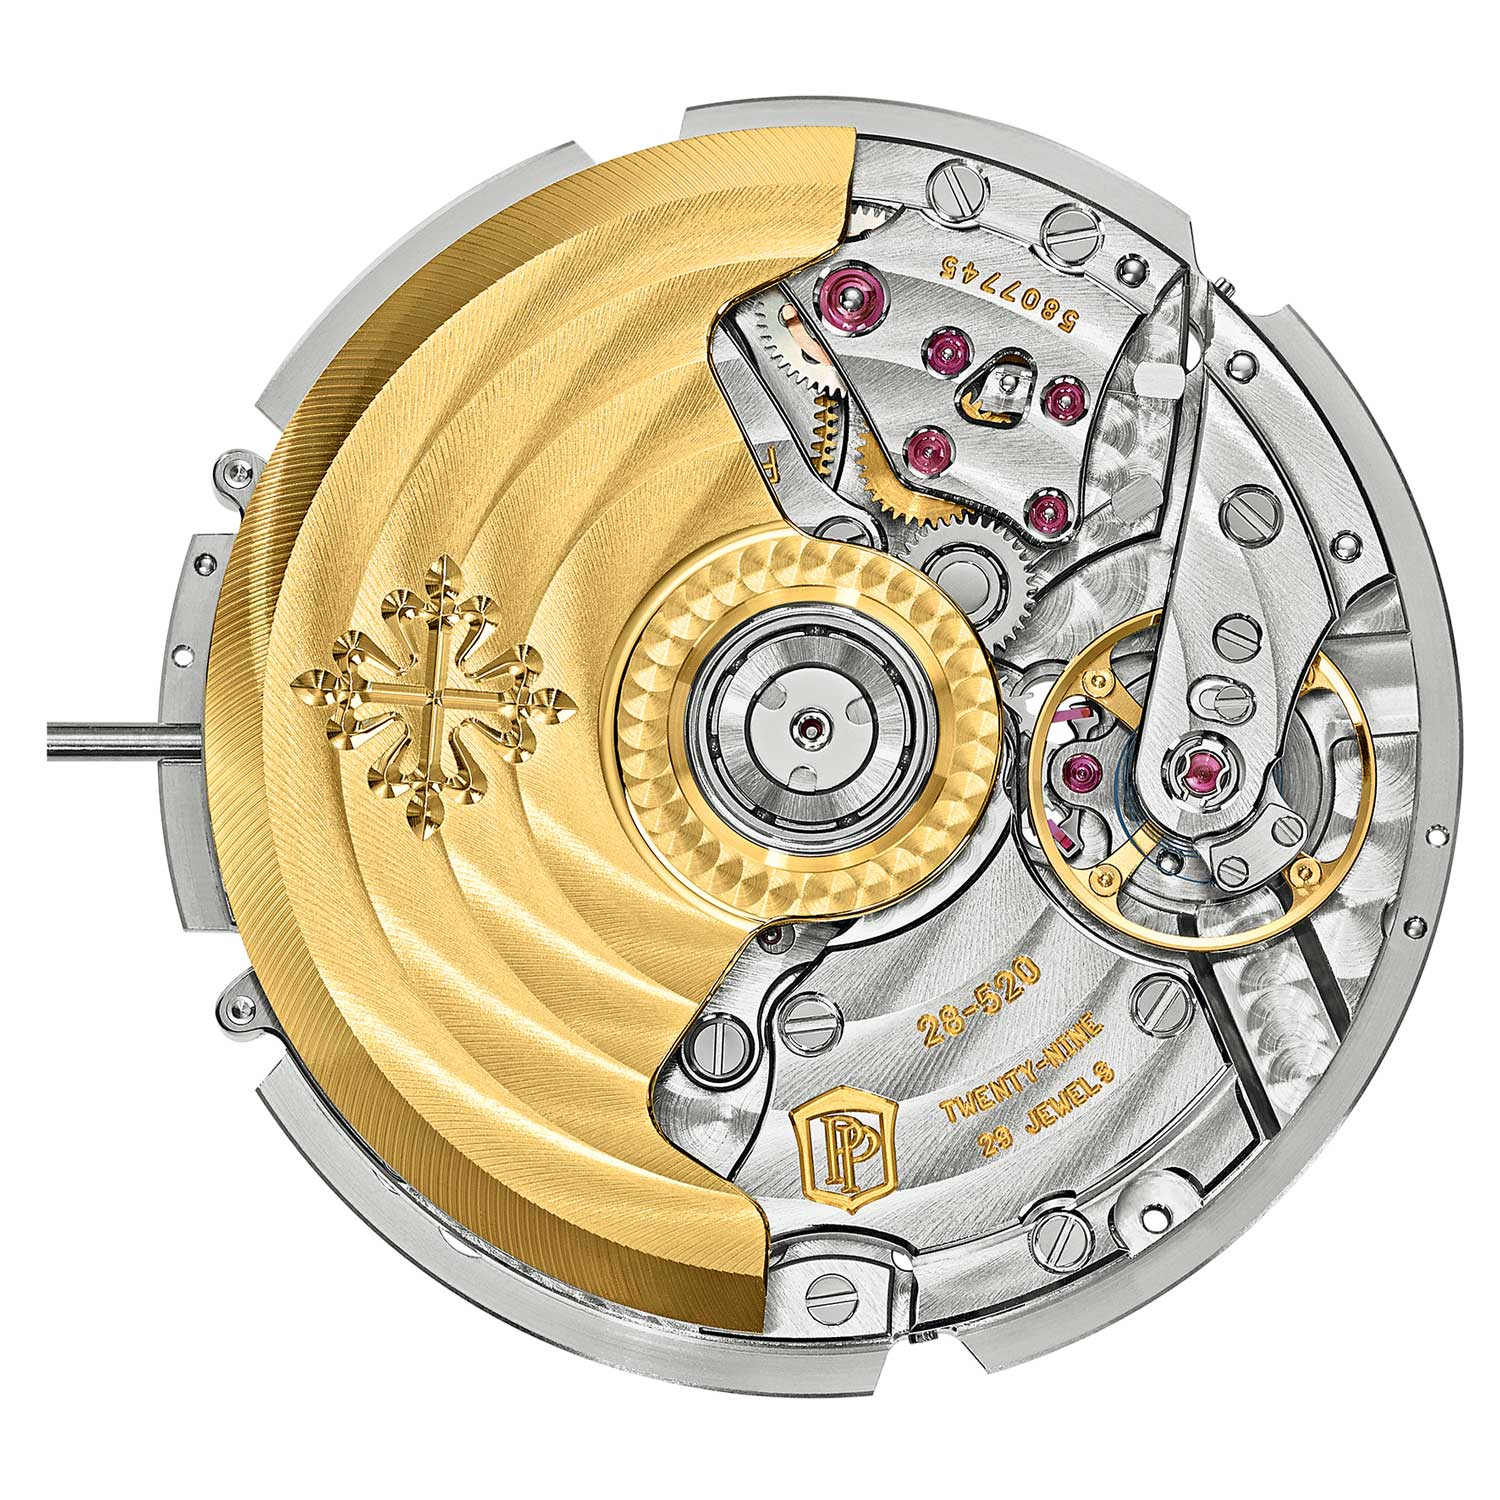 Patek Philippe's first in-house chronograph movement is the automatic vertical-clutch-driven caliber CH 28-520 found in the annual calendar chronograph references such as, the ref. 5905